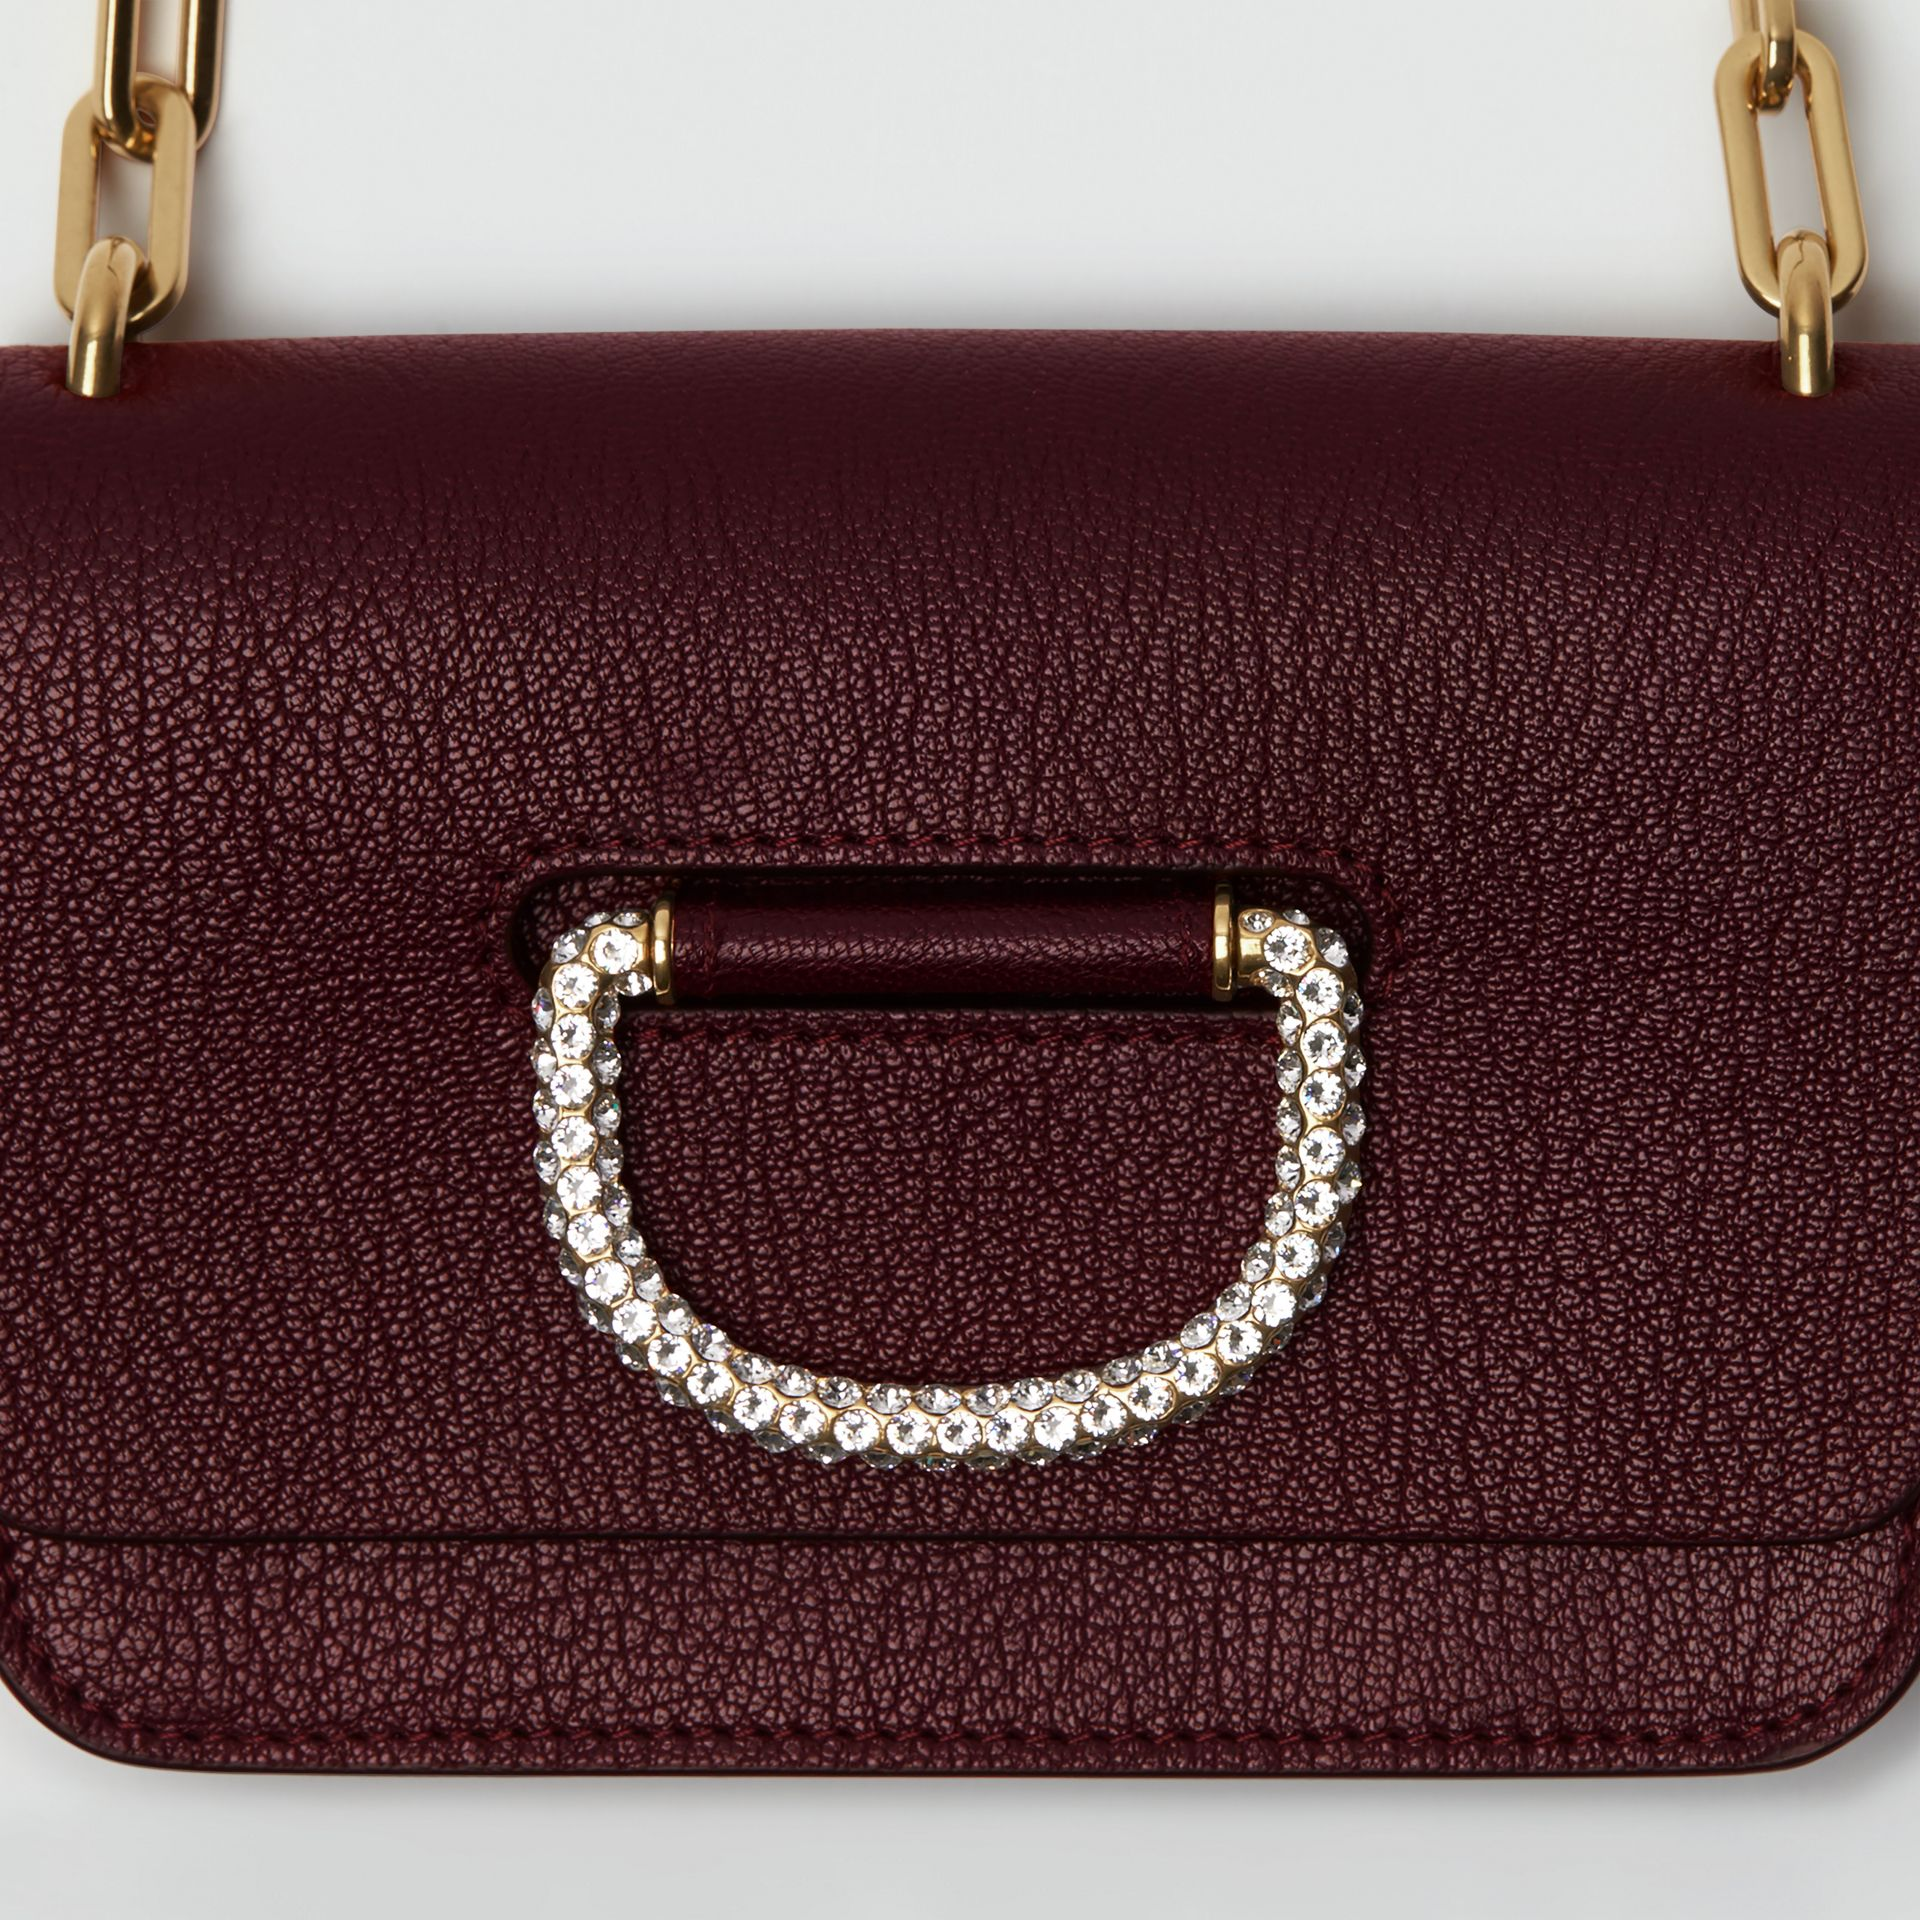 The Mini Leather Crystal D-ring Bag in Deep Claret - Women | Burberry United Kingdom - gallery image 1